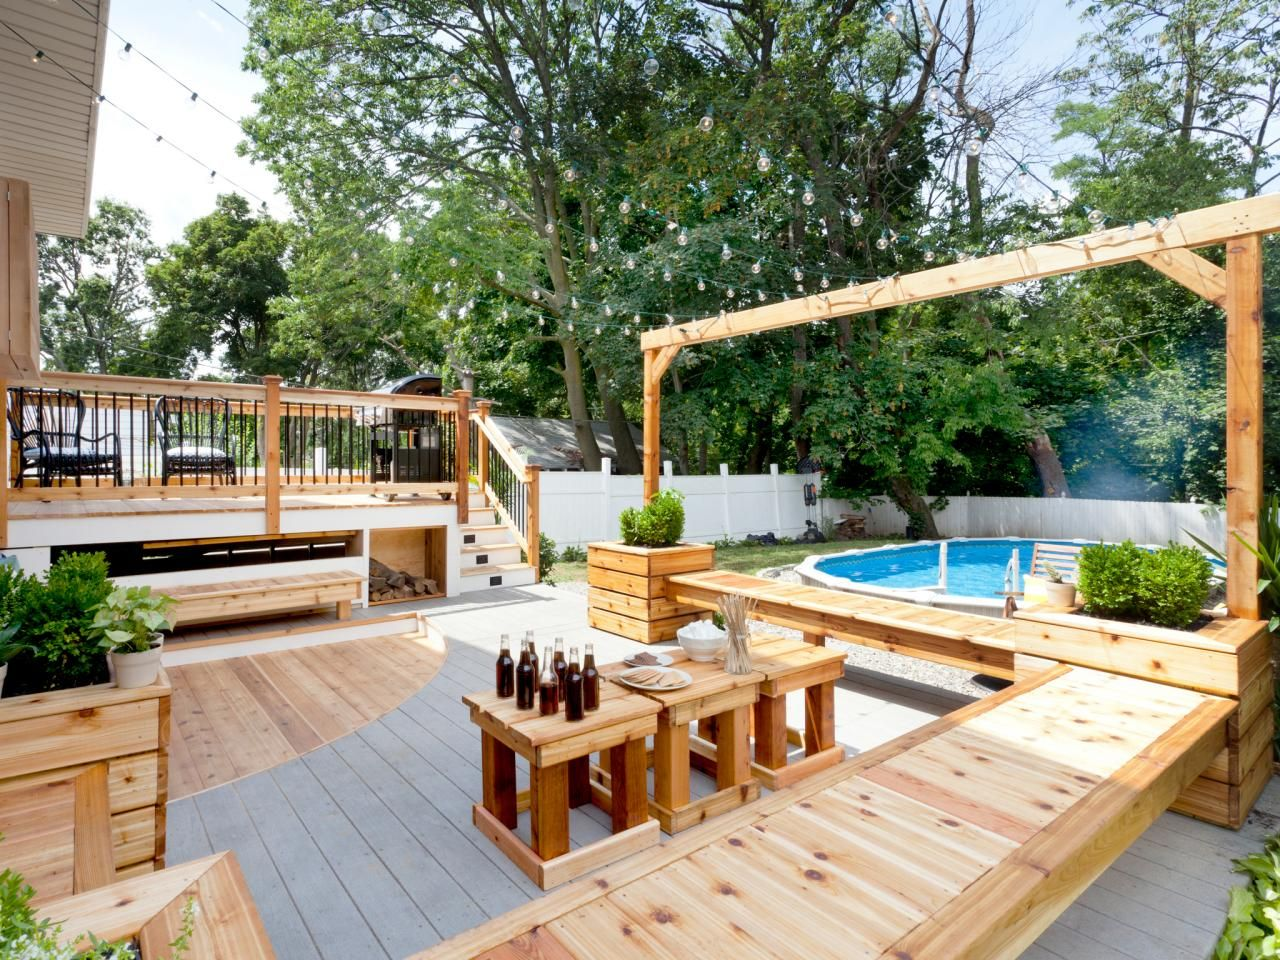 Built In Pine Benches Provide Ample Seating On The Back